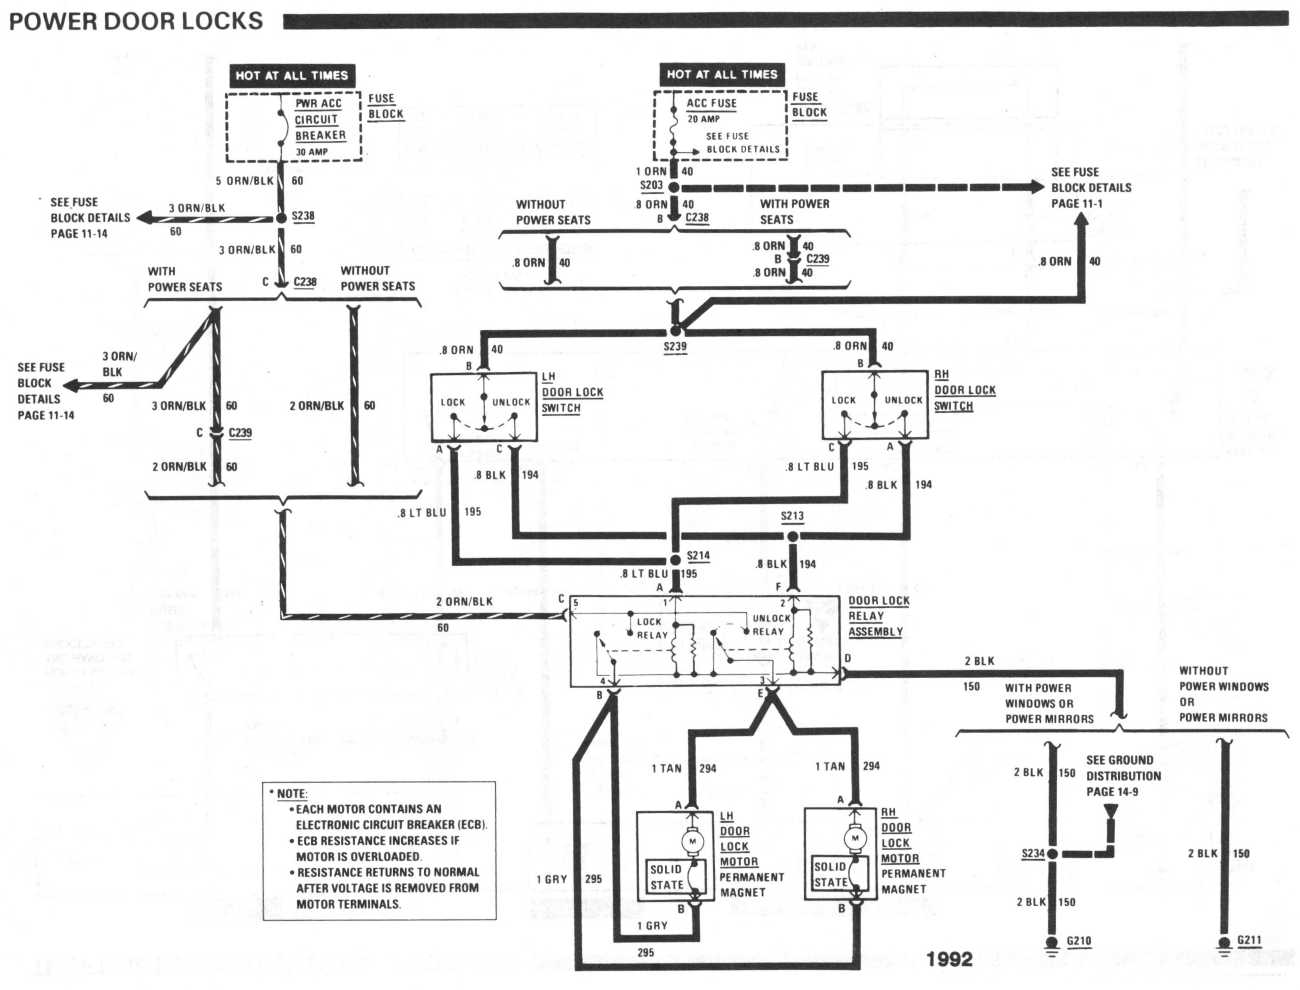 Door Lock Wiring Diagram 1992 Buick Century Library 92 Power Locks Not Working At All Third Generation F Body Rh Thirdgen Org